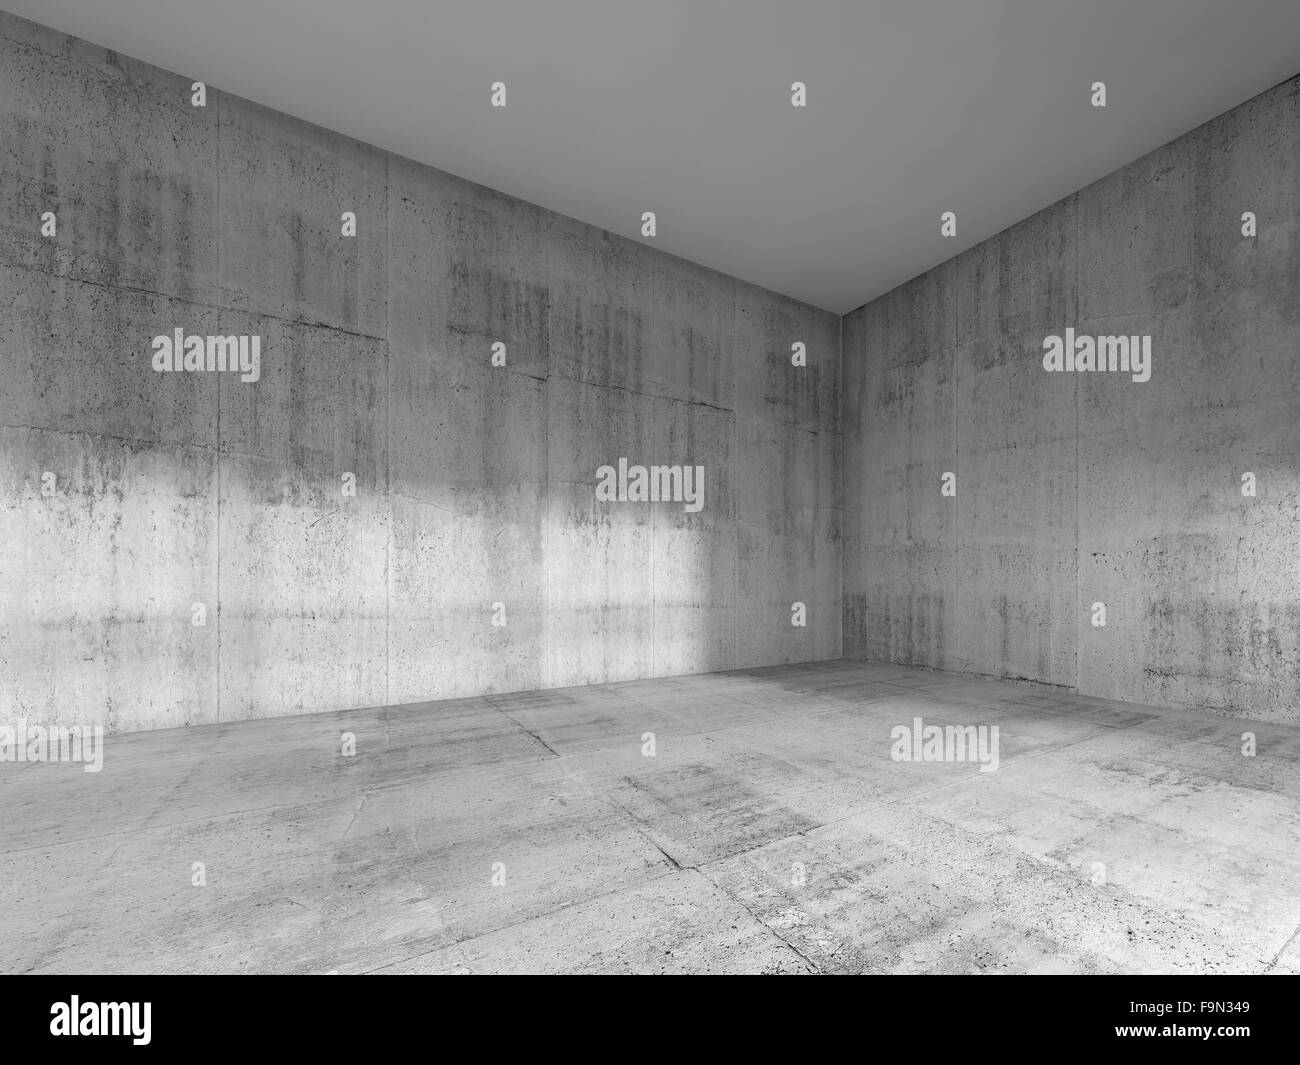 Abstract Interior Of An Empty Room With Rough Concrete Walls And White  Ceiling. 3d Render Illustration